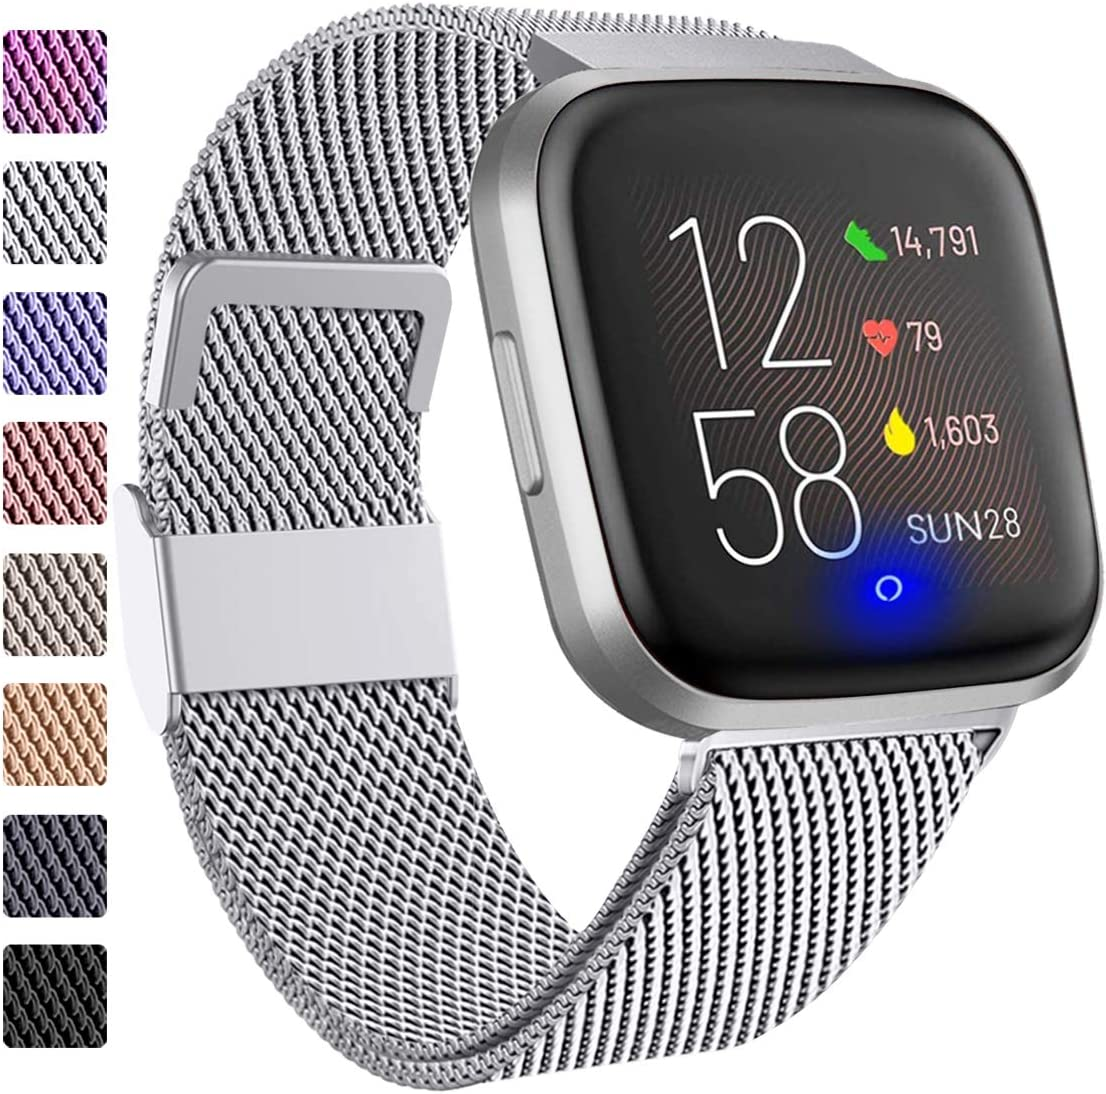 ZWGKKYGYH Compatible with Fitbit Versa and Versa 2 Bands for Women Men, Stainless Steel Mesh Metal Band Replacement for Fitbit Versa/Versa Lite Smart Watch, Silver Small